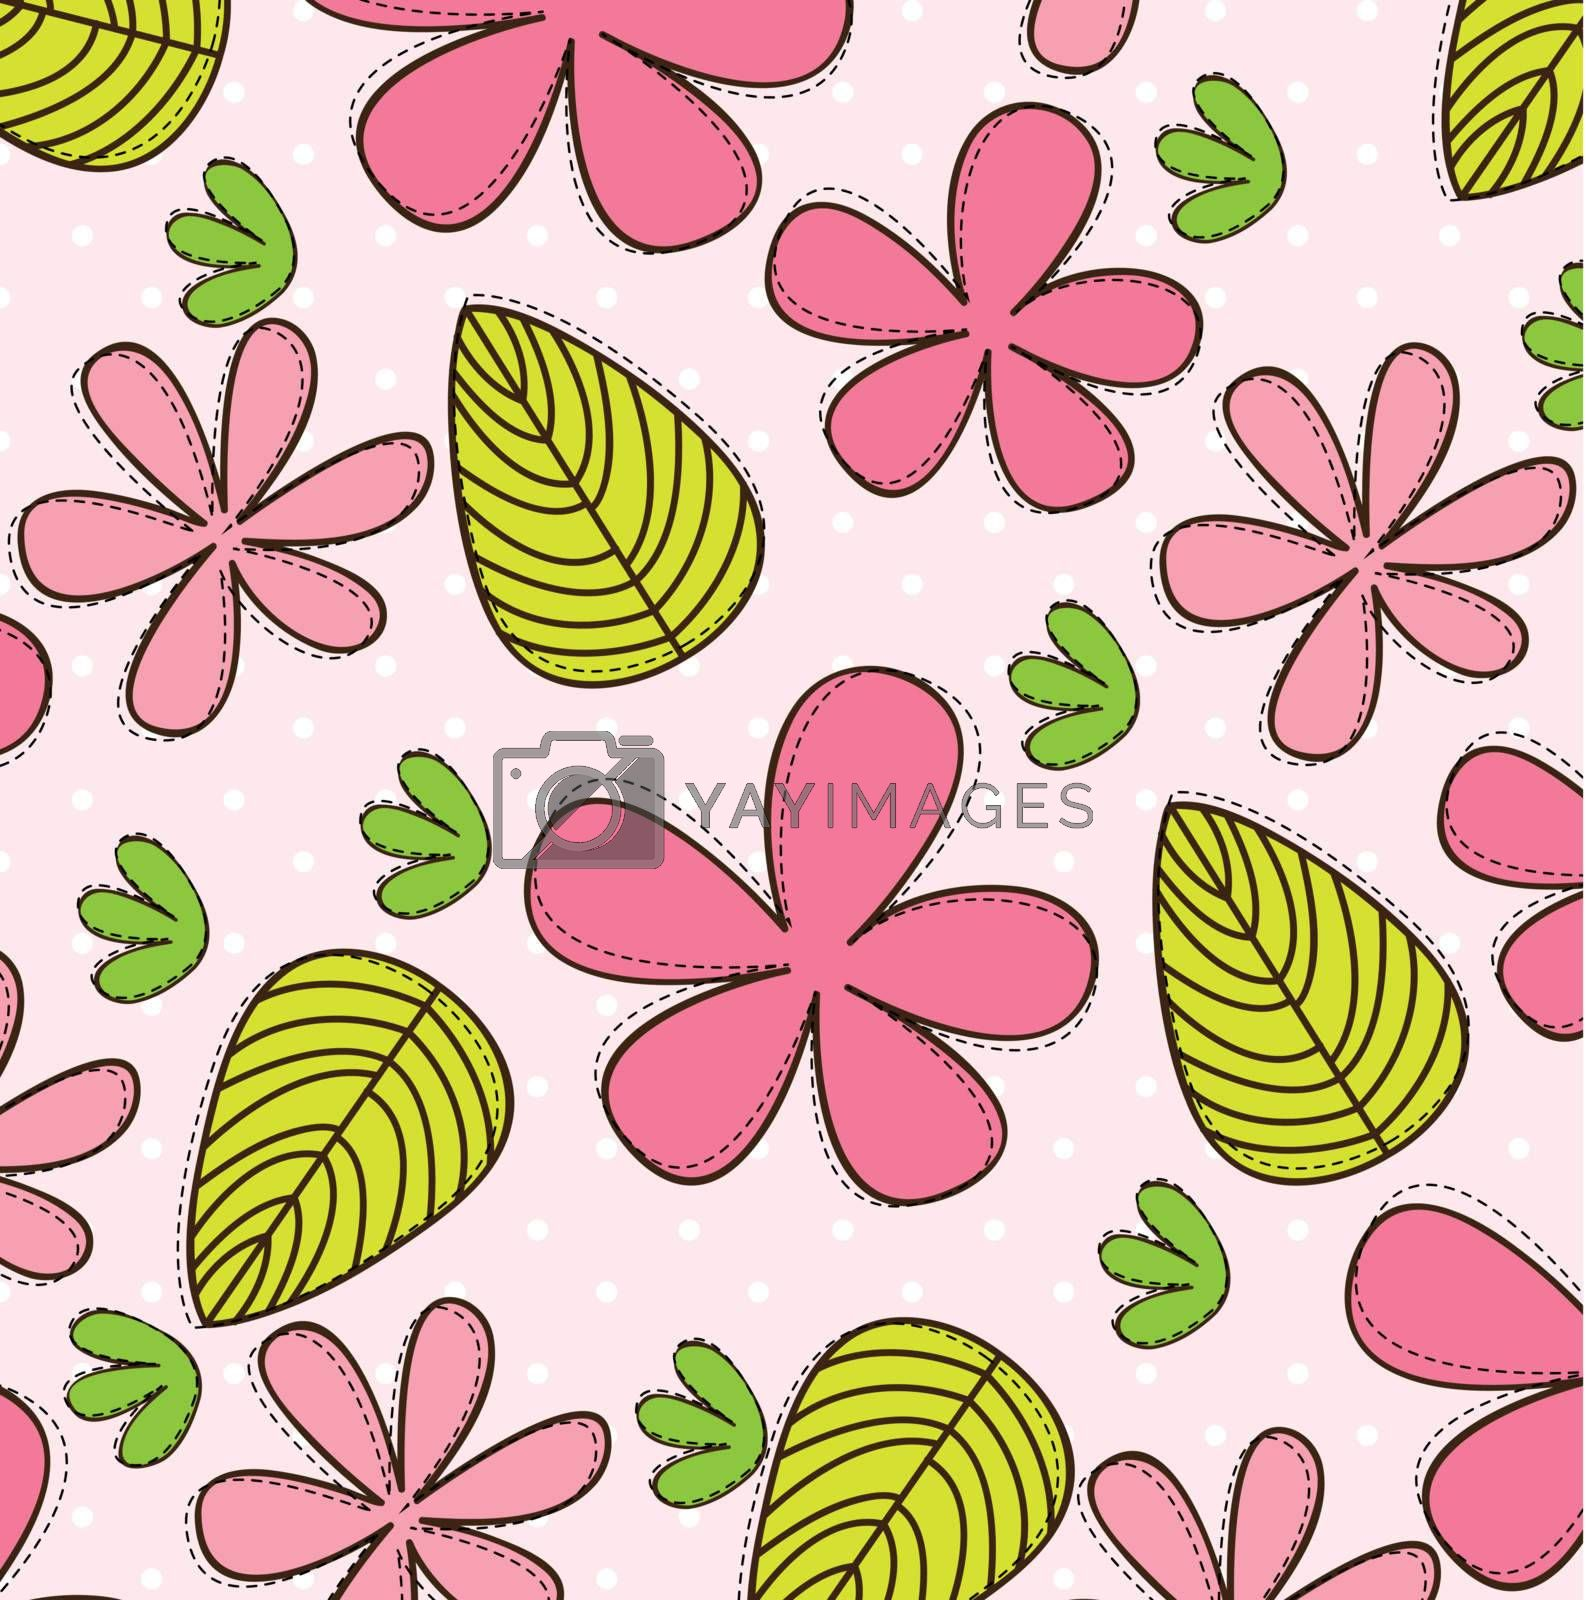 Pink flower with green and yellow leaves vector illustration